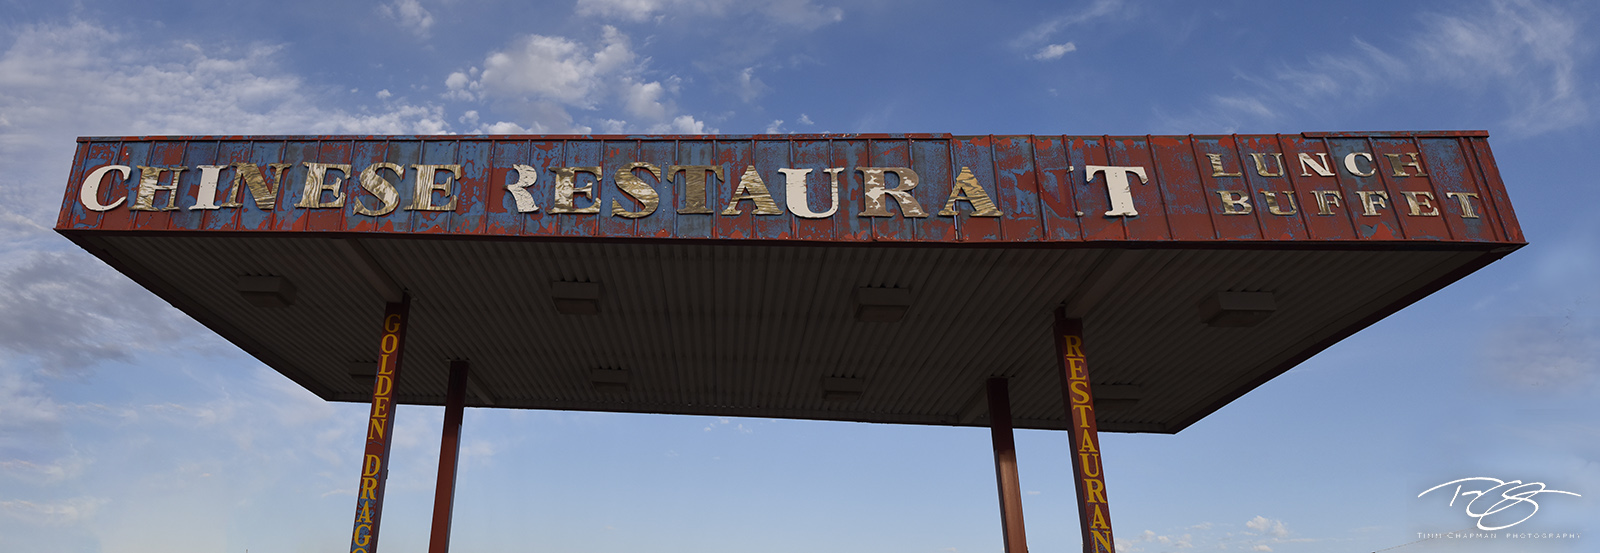 Sign; Road Sign; Route 66; chinese restaurant; santa rosa; new mexico; chinese food; restaurant; vintage; mother road, buffet, canopy, peeling paint, abandoned, derelict, vintage sign, panorama, photo